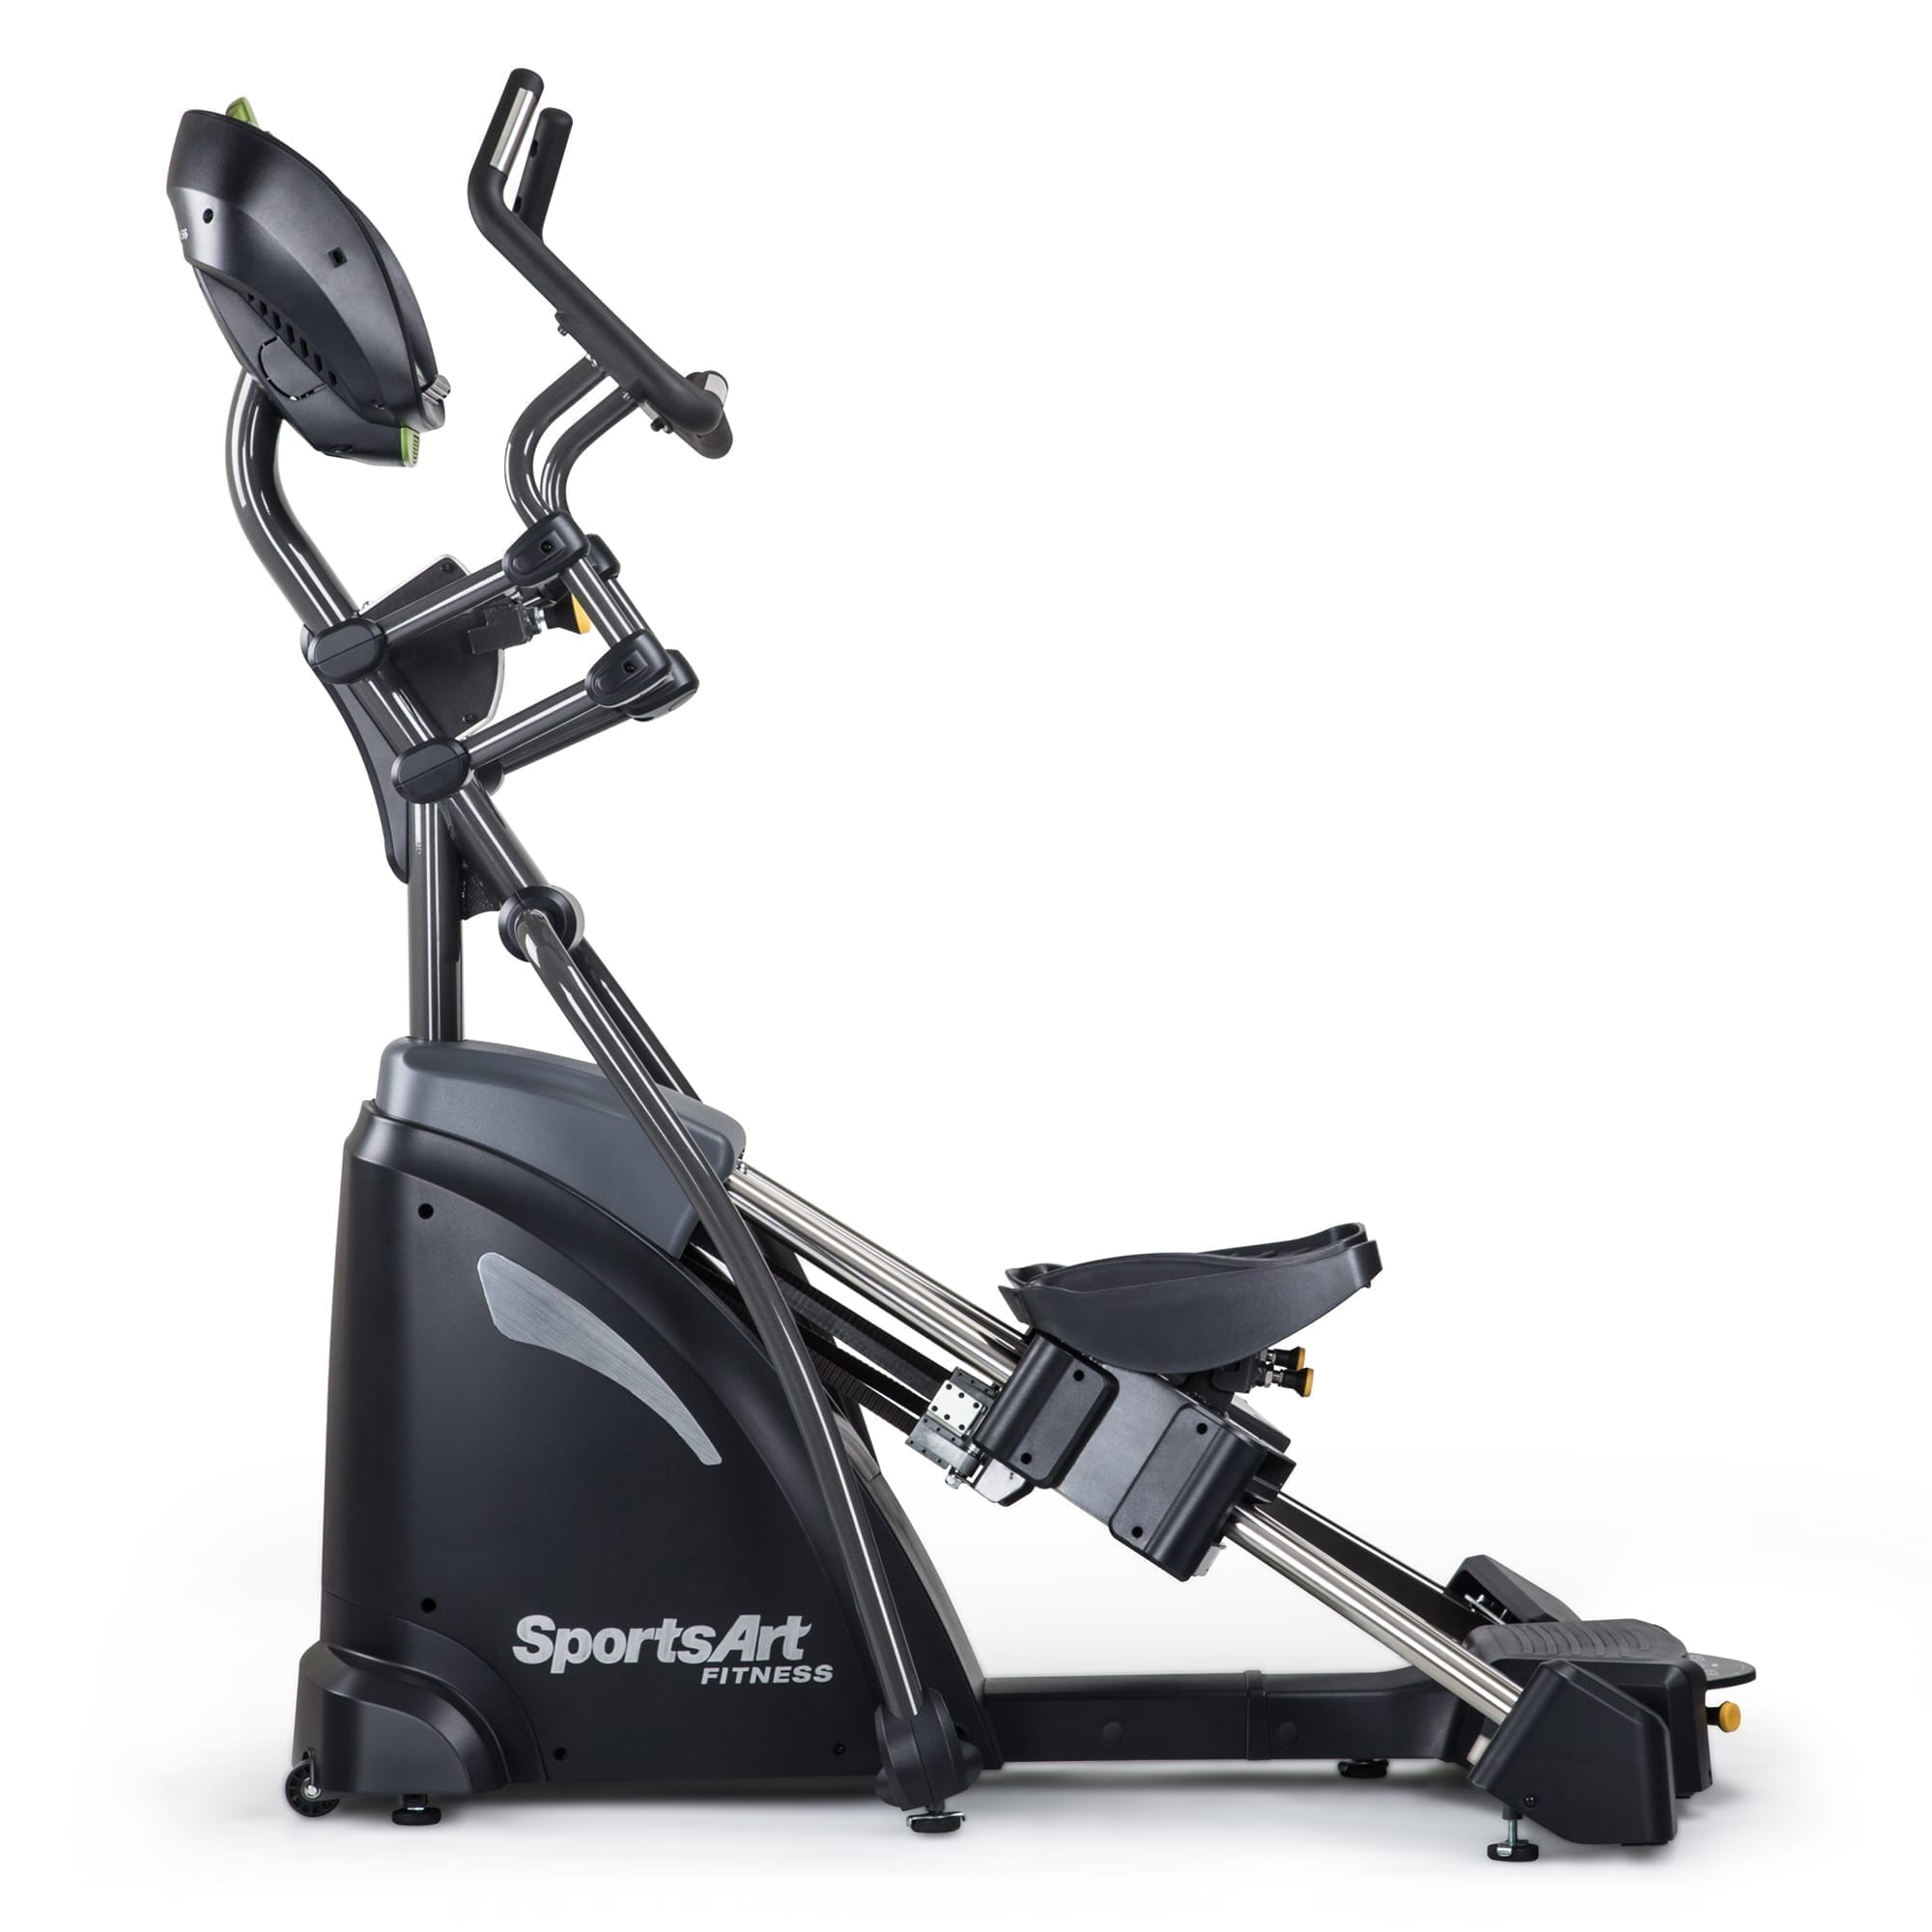 S775 PINNACLE CROSS TRAINER ELLIPTICAL - SPORTSART (S775)